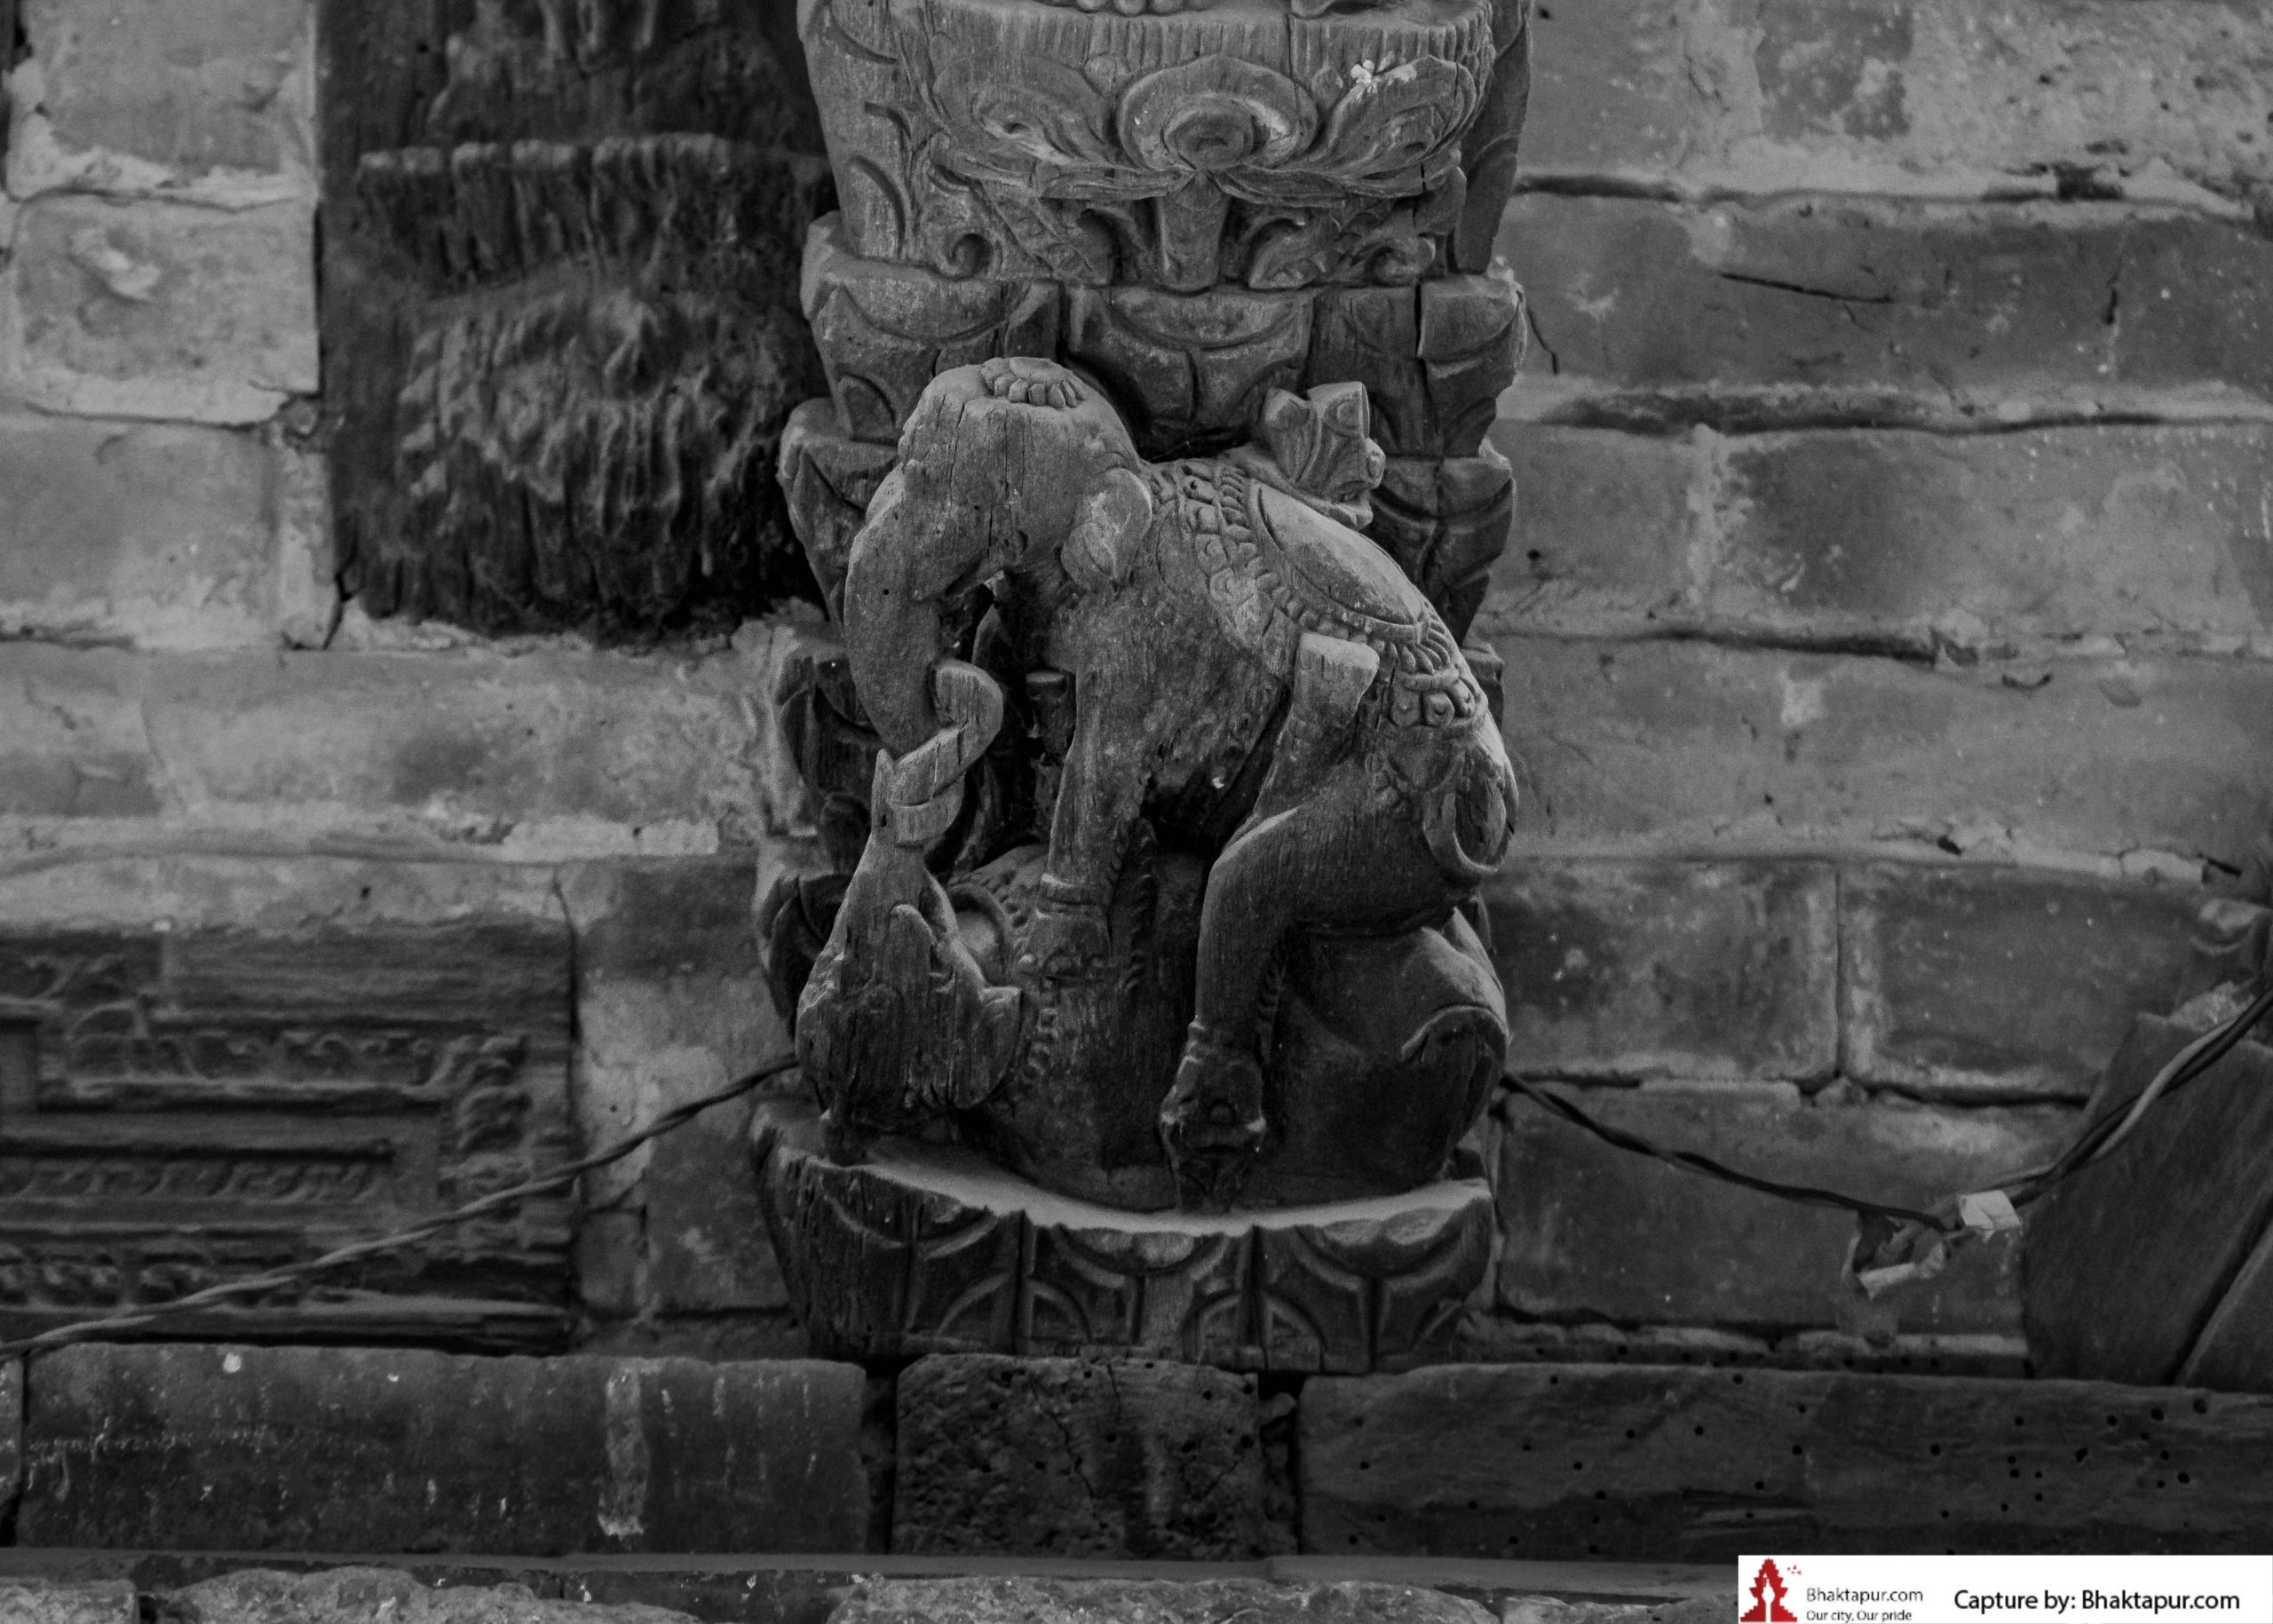 https://www.bhaktapur.com/wp-content/uploads/2021/08/erotic-carving-115-of-137-scaled.jpg